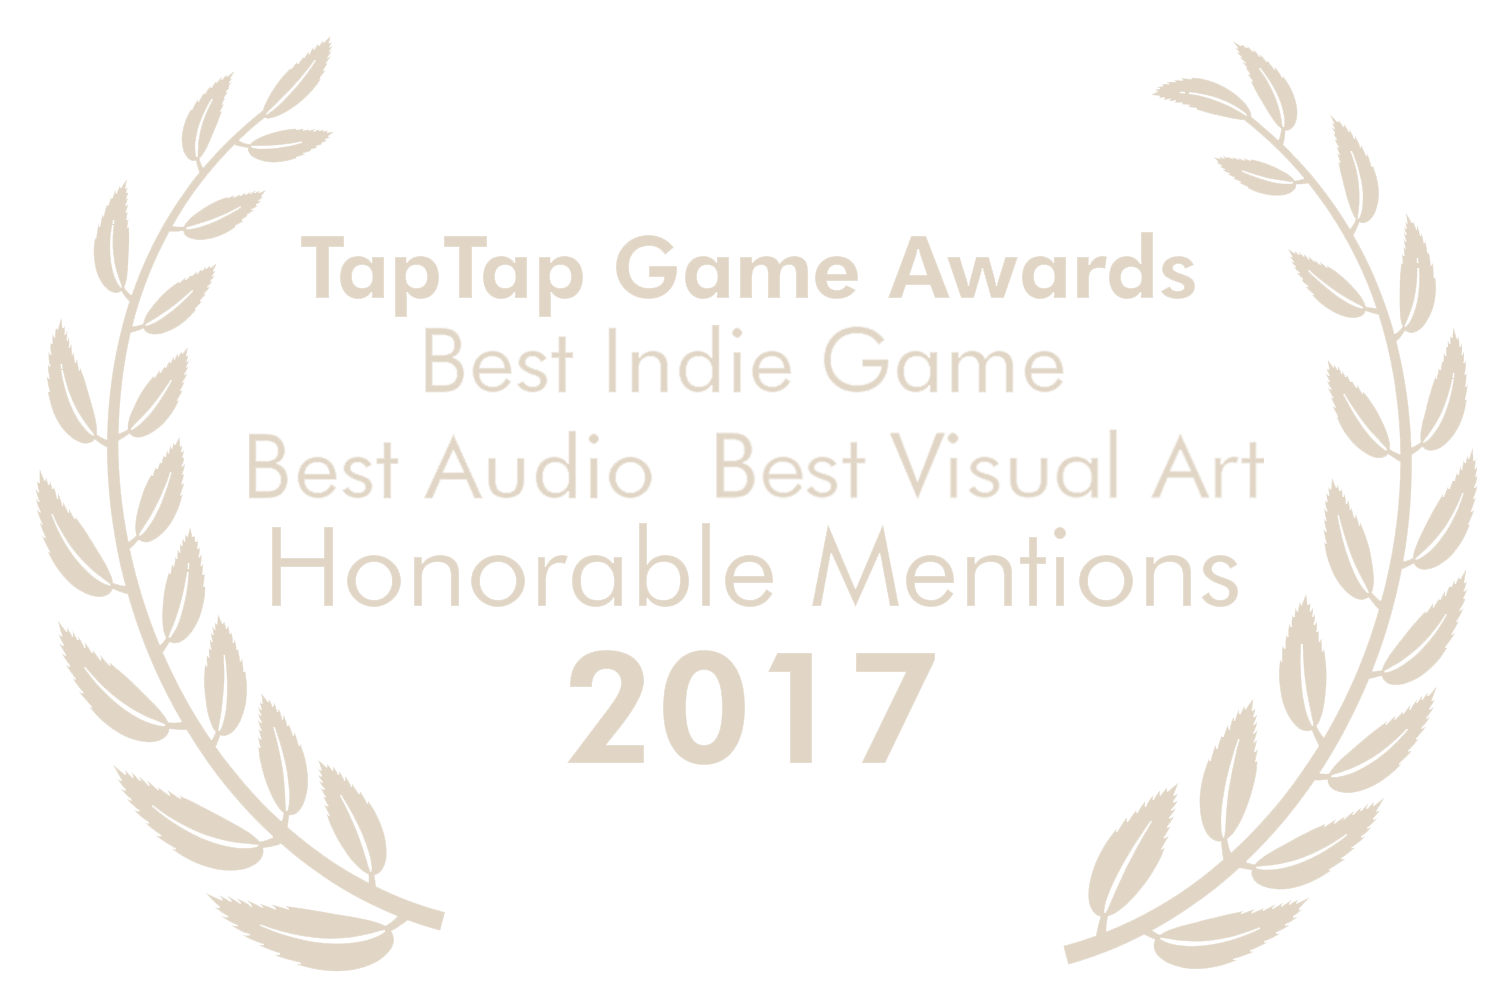 TapTap Game Awards 2017 - Best Indie, Best Audio, Best Visual Art